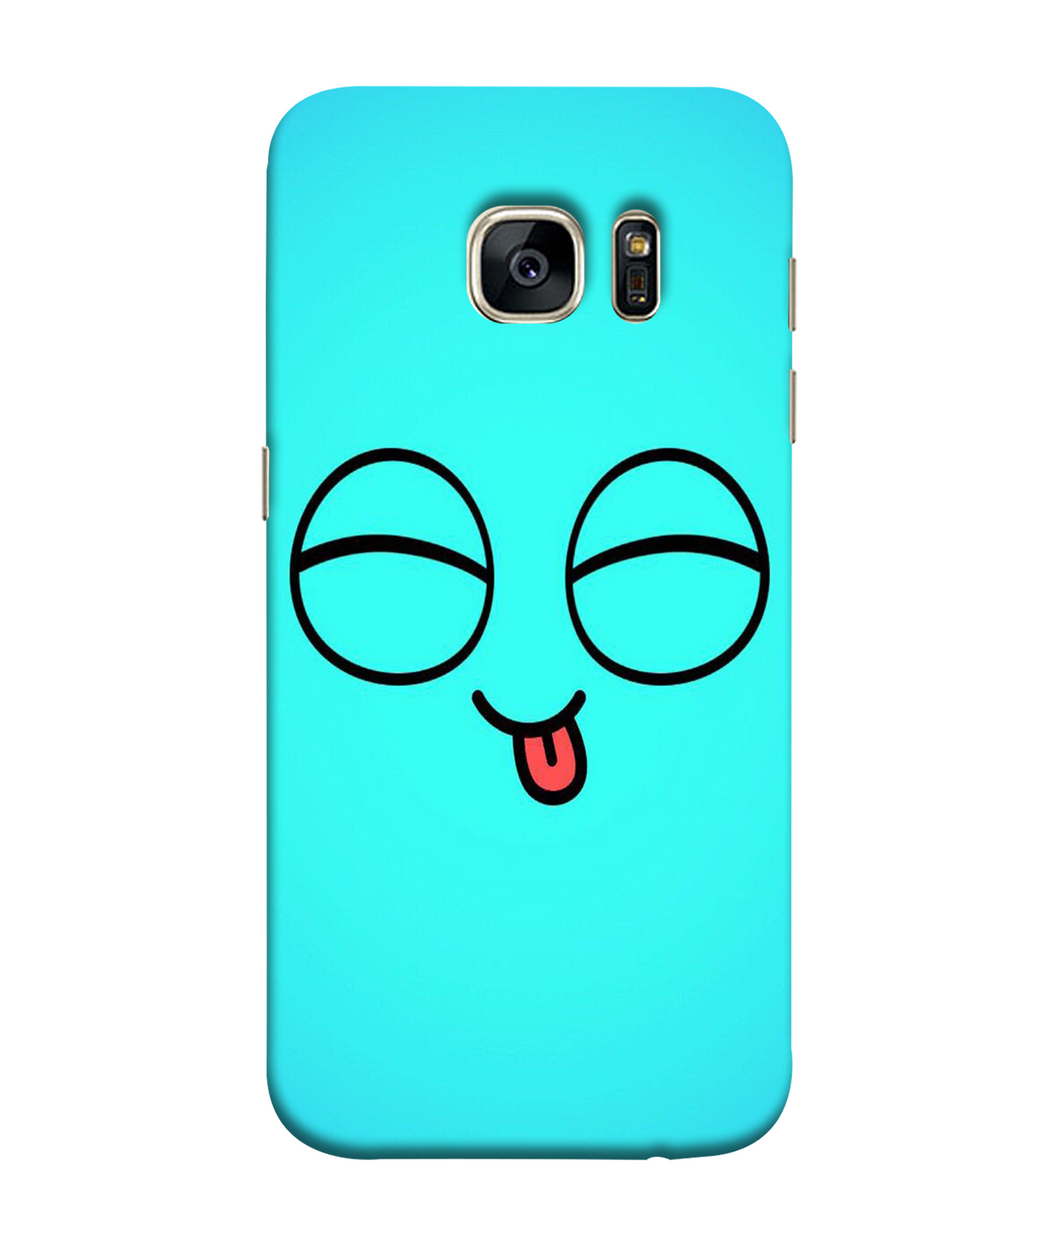 Samsung Galaxy S7 Blue Cute Mobile cover